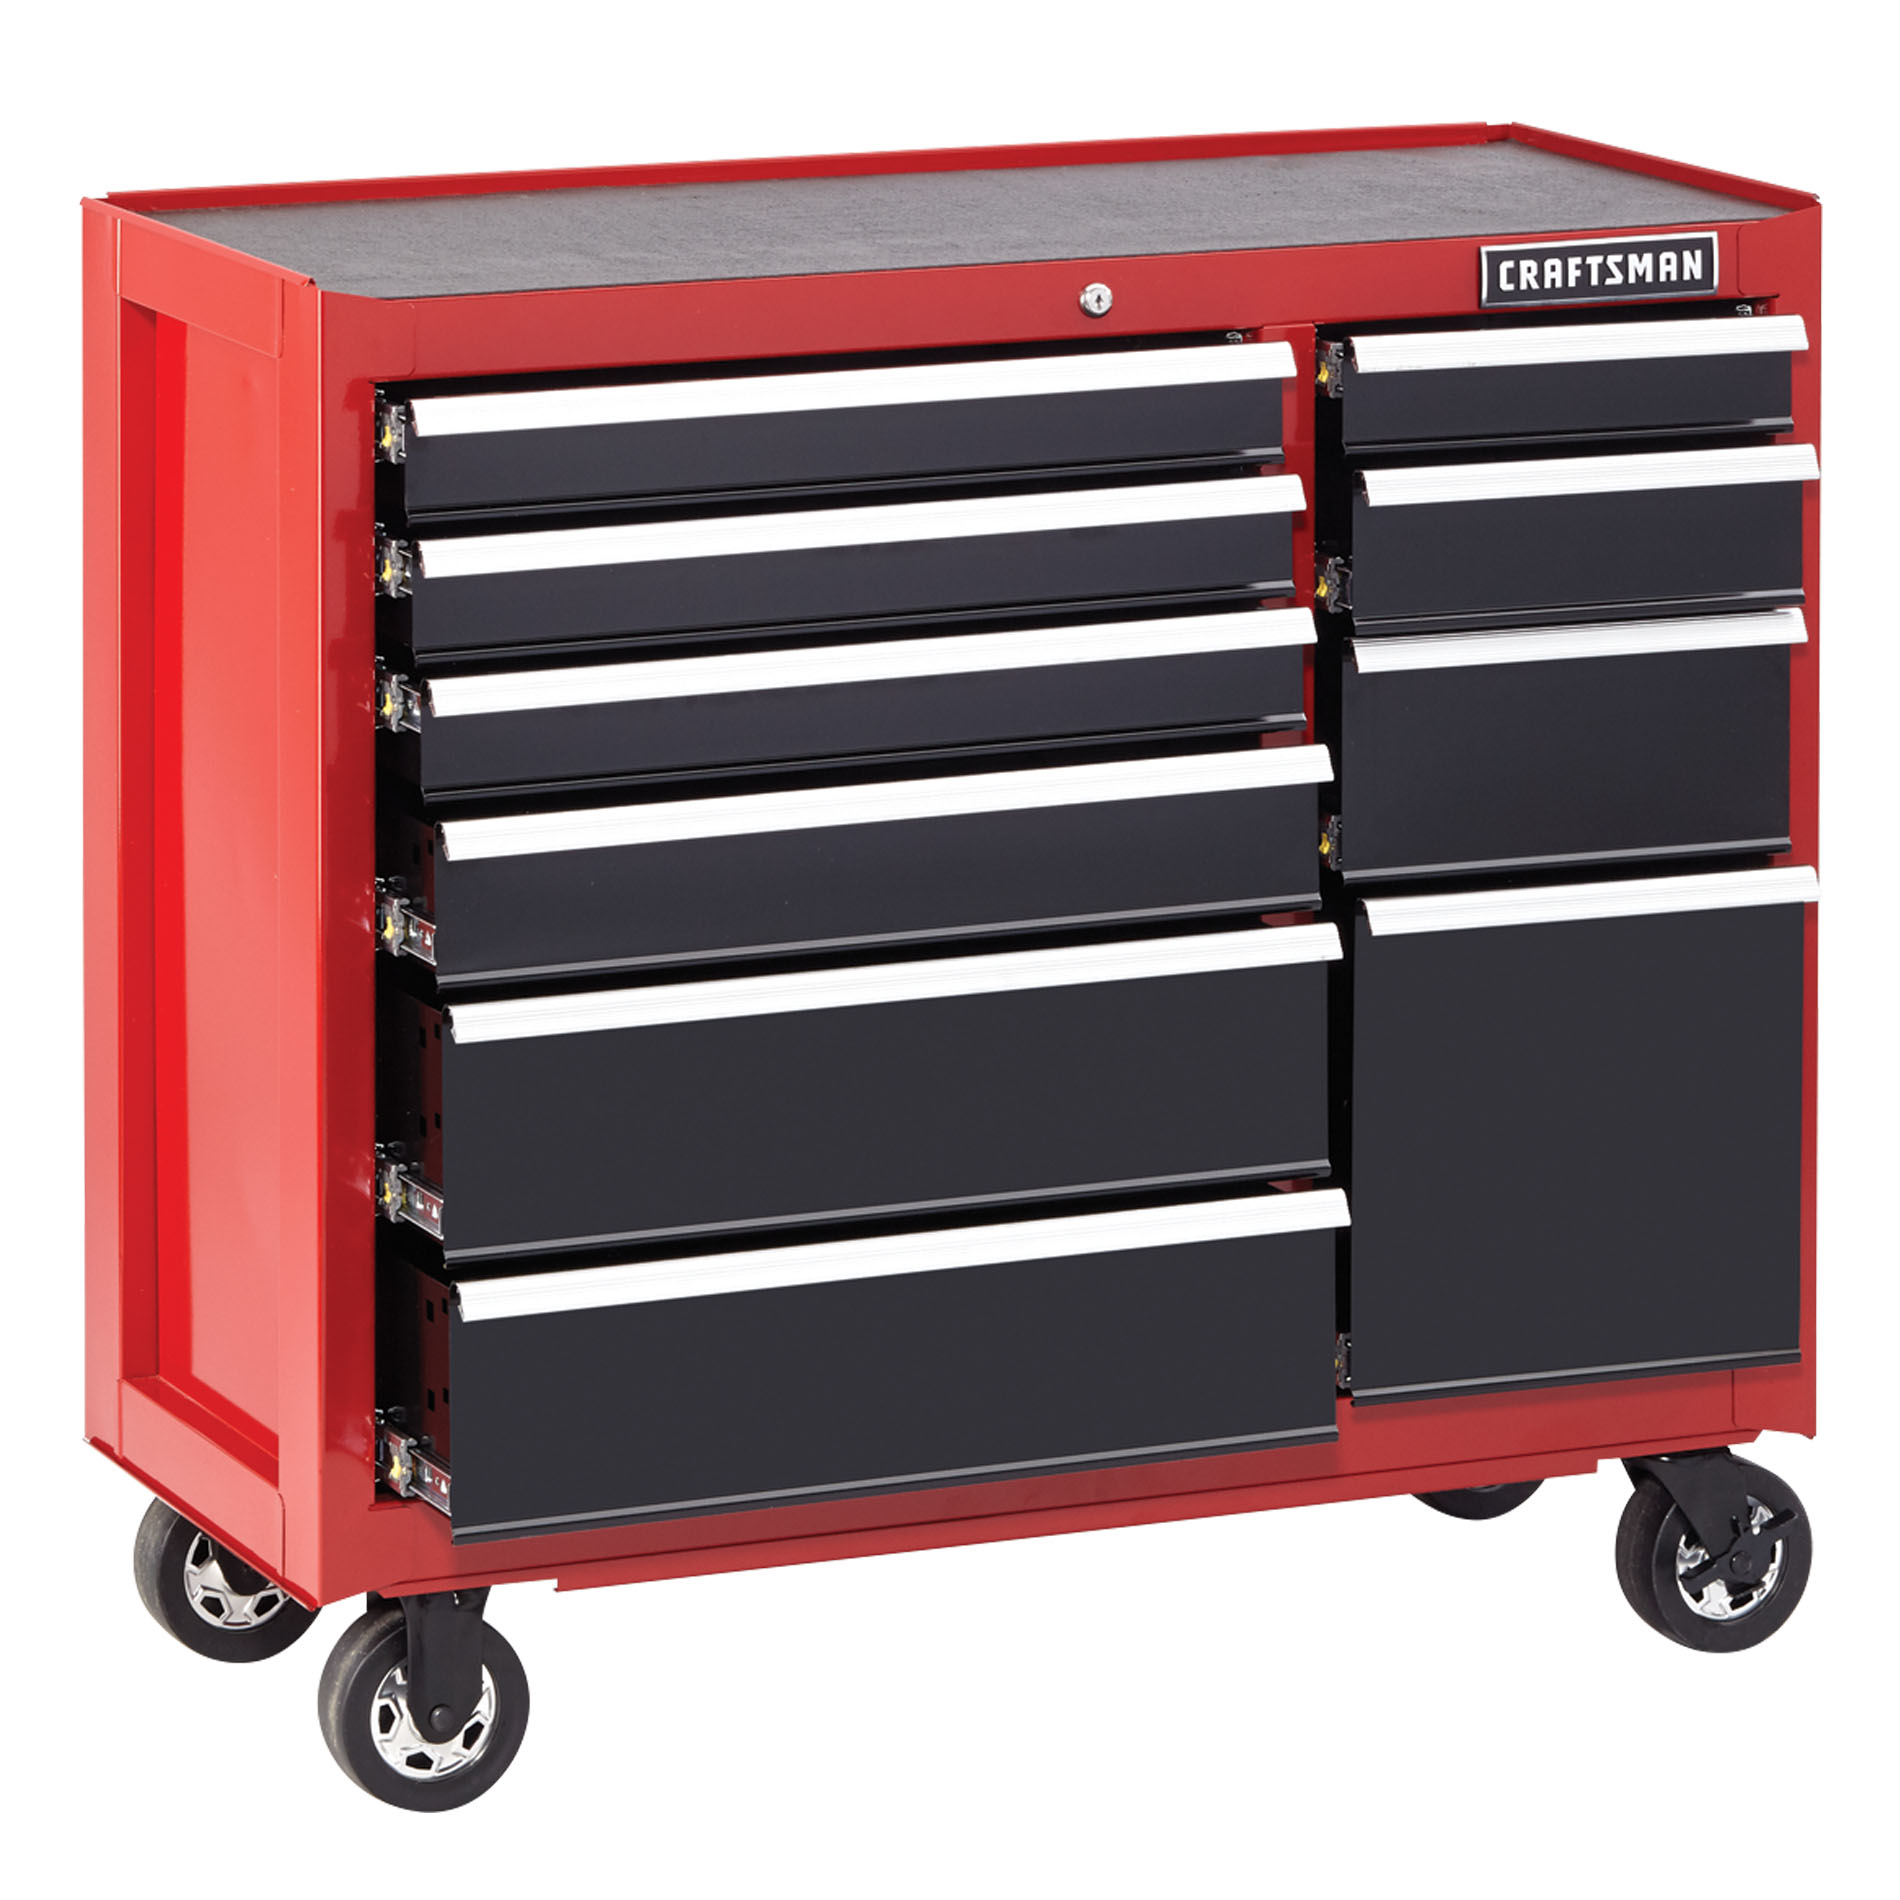 "Craftsman 41"""" 10-Drawer Heavy-Duty Rolling Cart - Red"